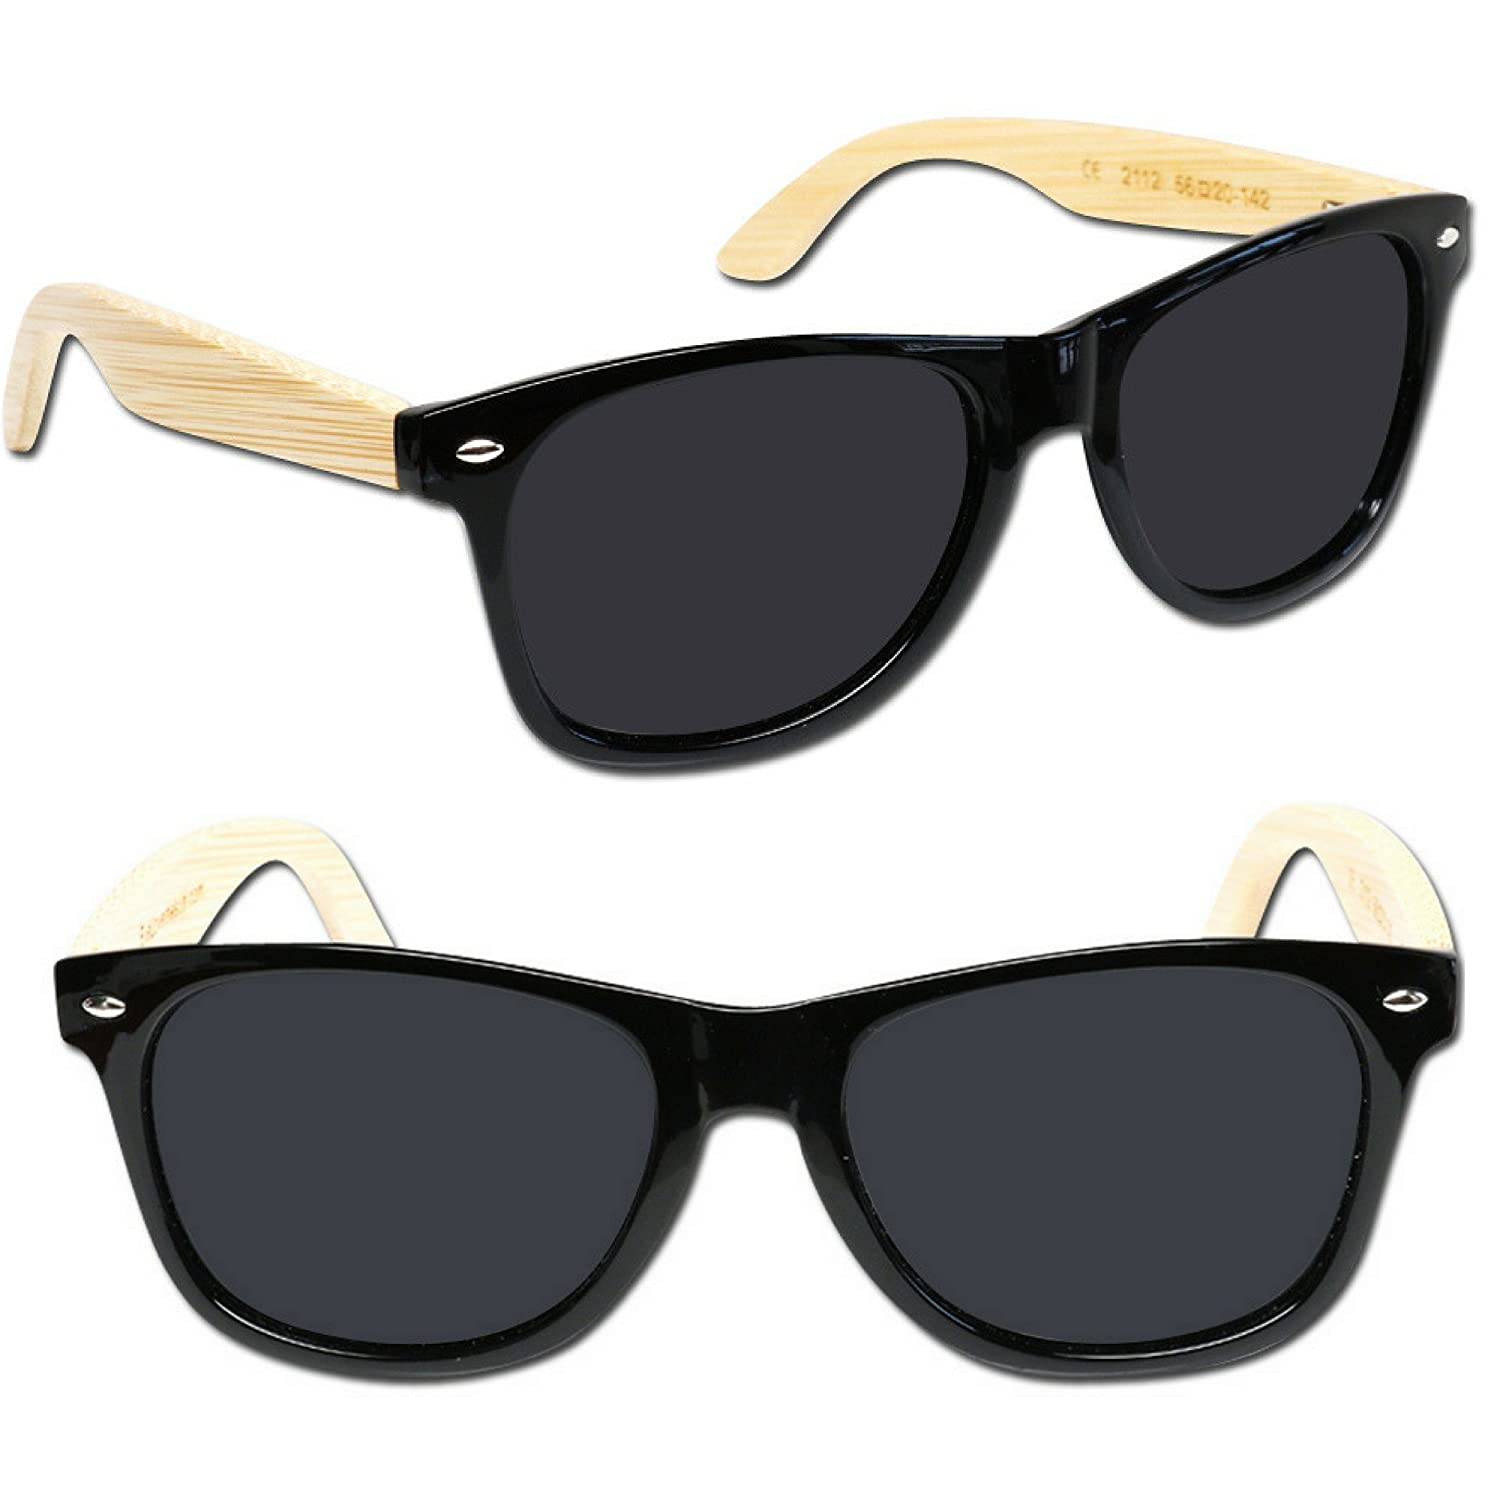 Eye Love - Gafas de sol - para hombre multicolor Shiny Black With Bamboo Temples: Amazon.es: Ropa y accesorios